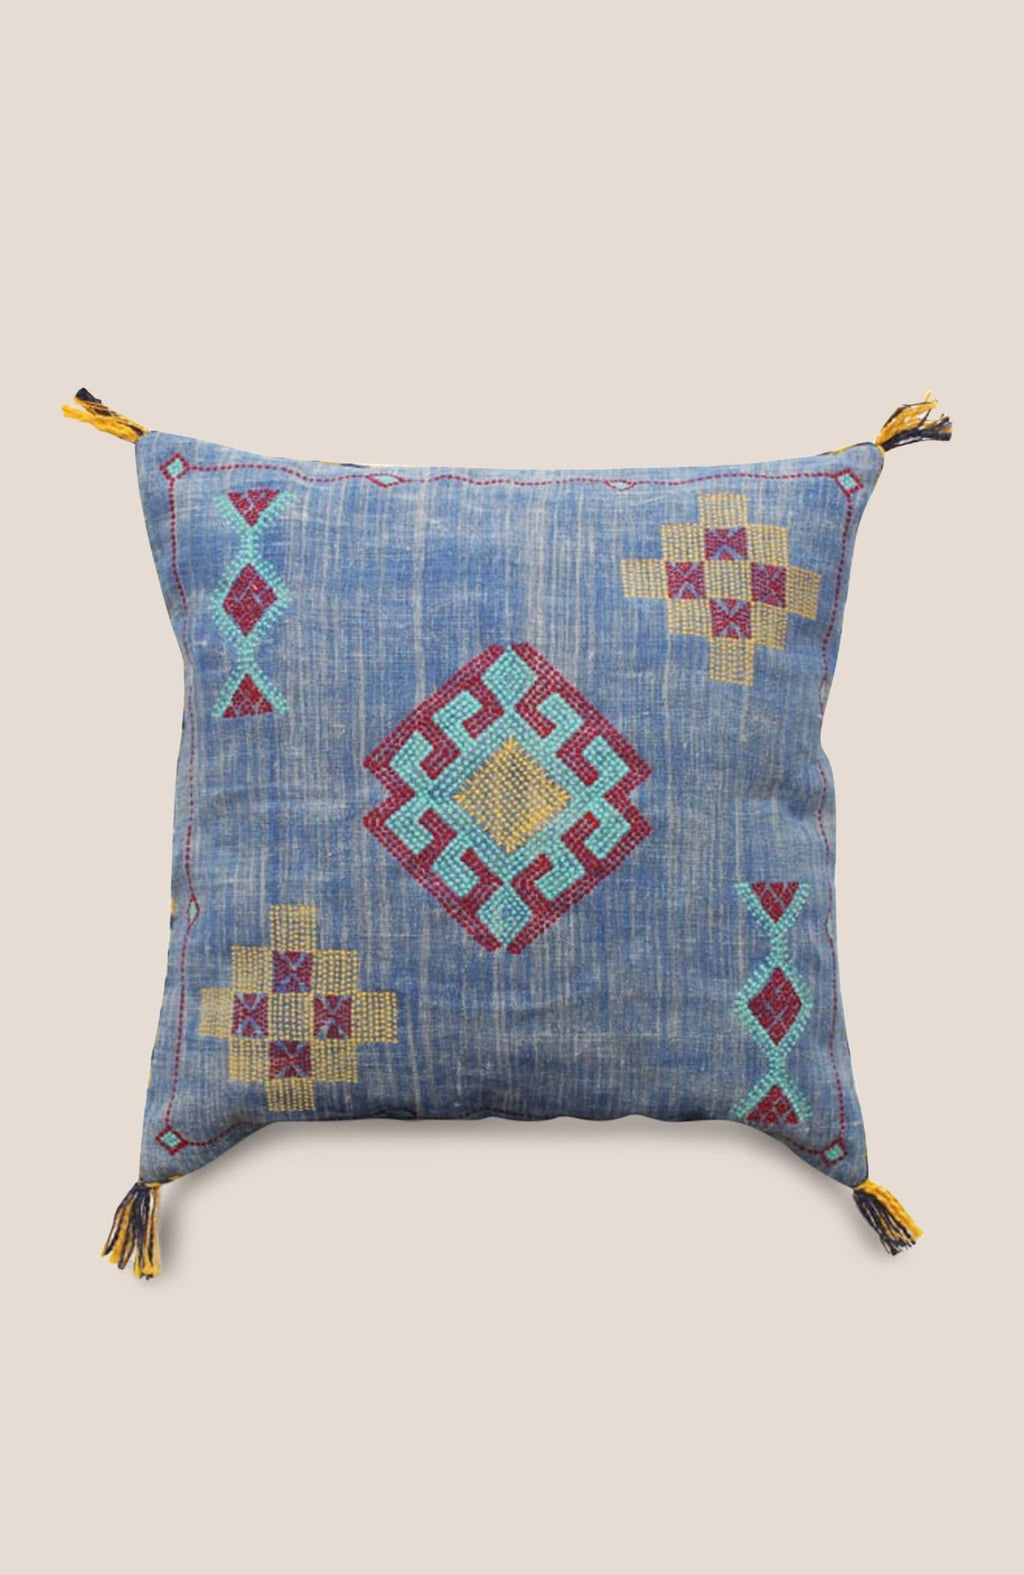 Sabra Pillow Cover Tala - Home Decor | Shop Baskets, Ceramics, Pillows, Rugs & Wall Hangs online